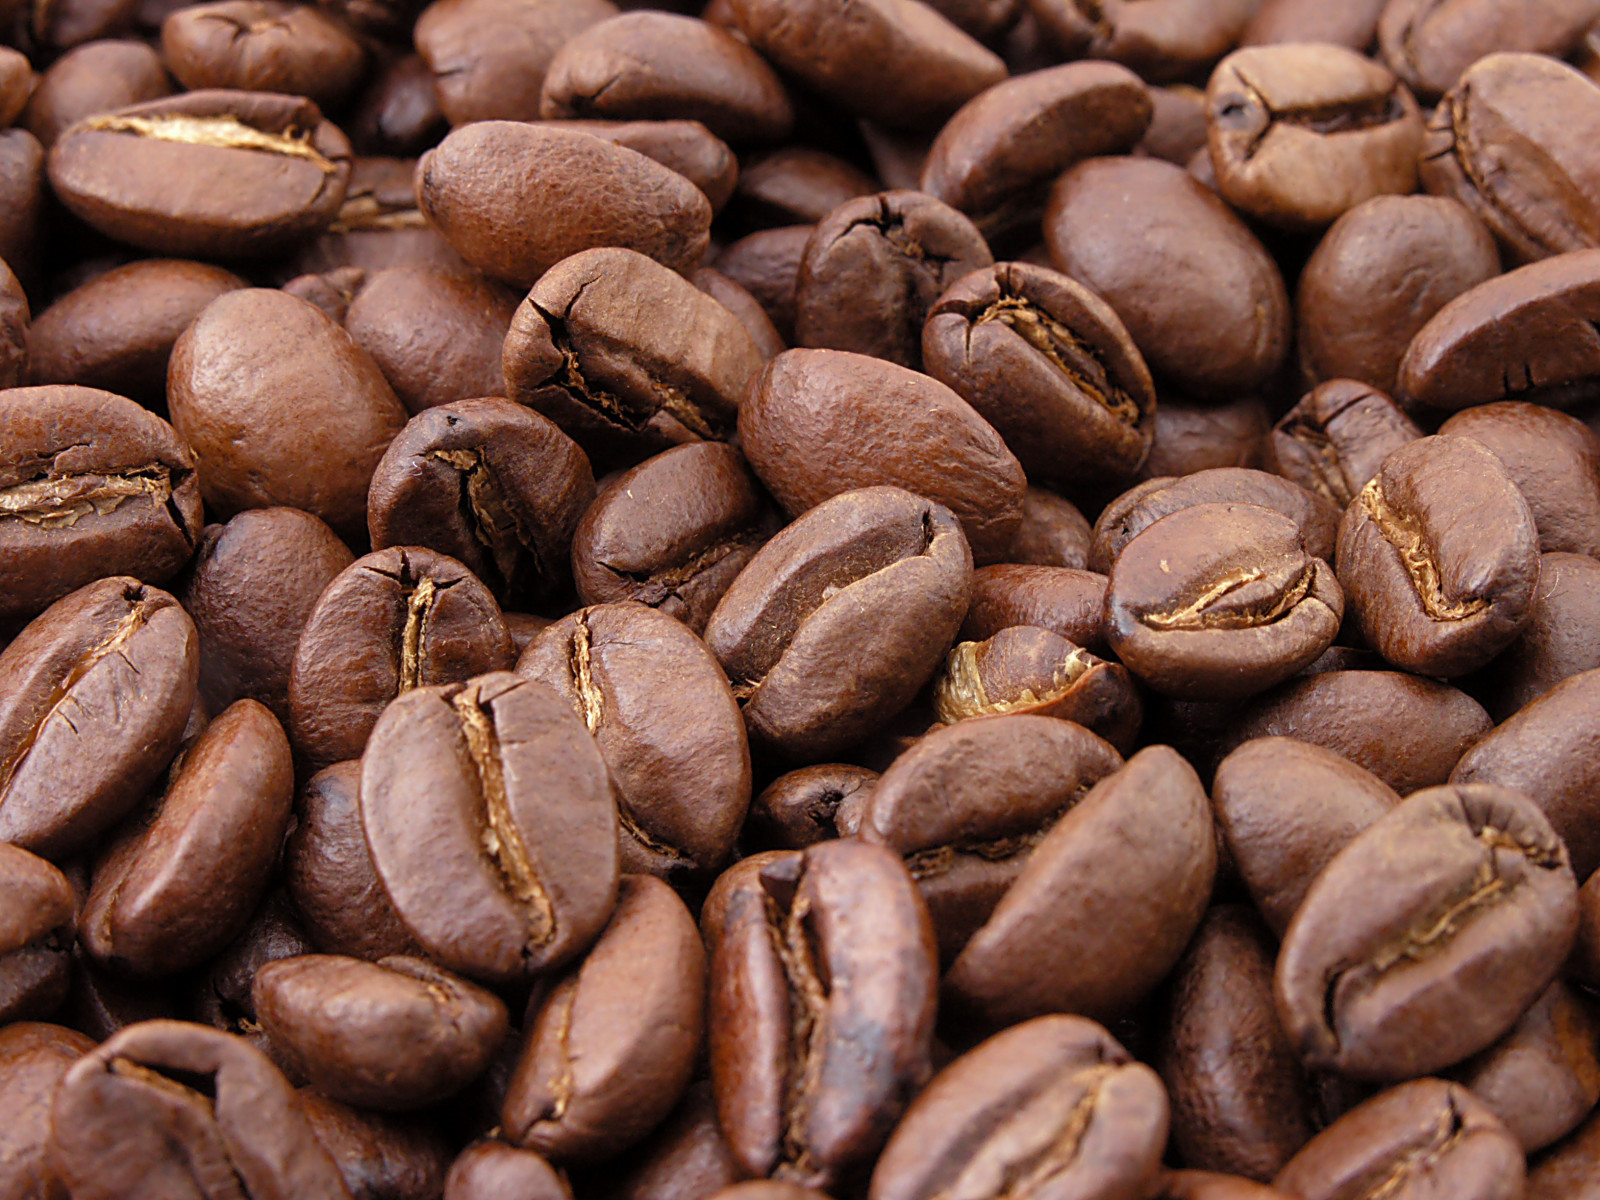 File:Roasted coffee beans.jpg - Wikipedia